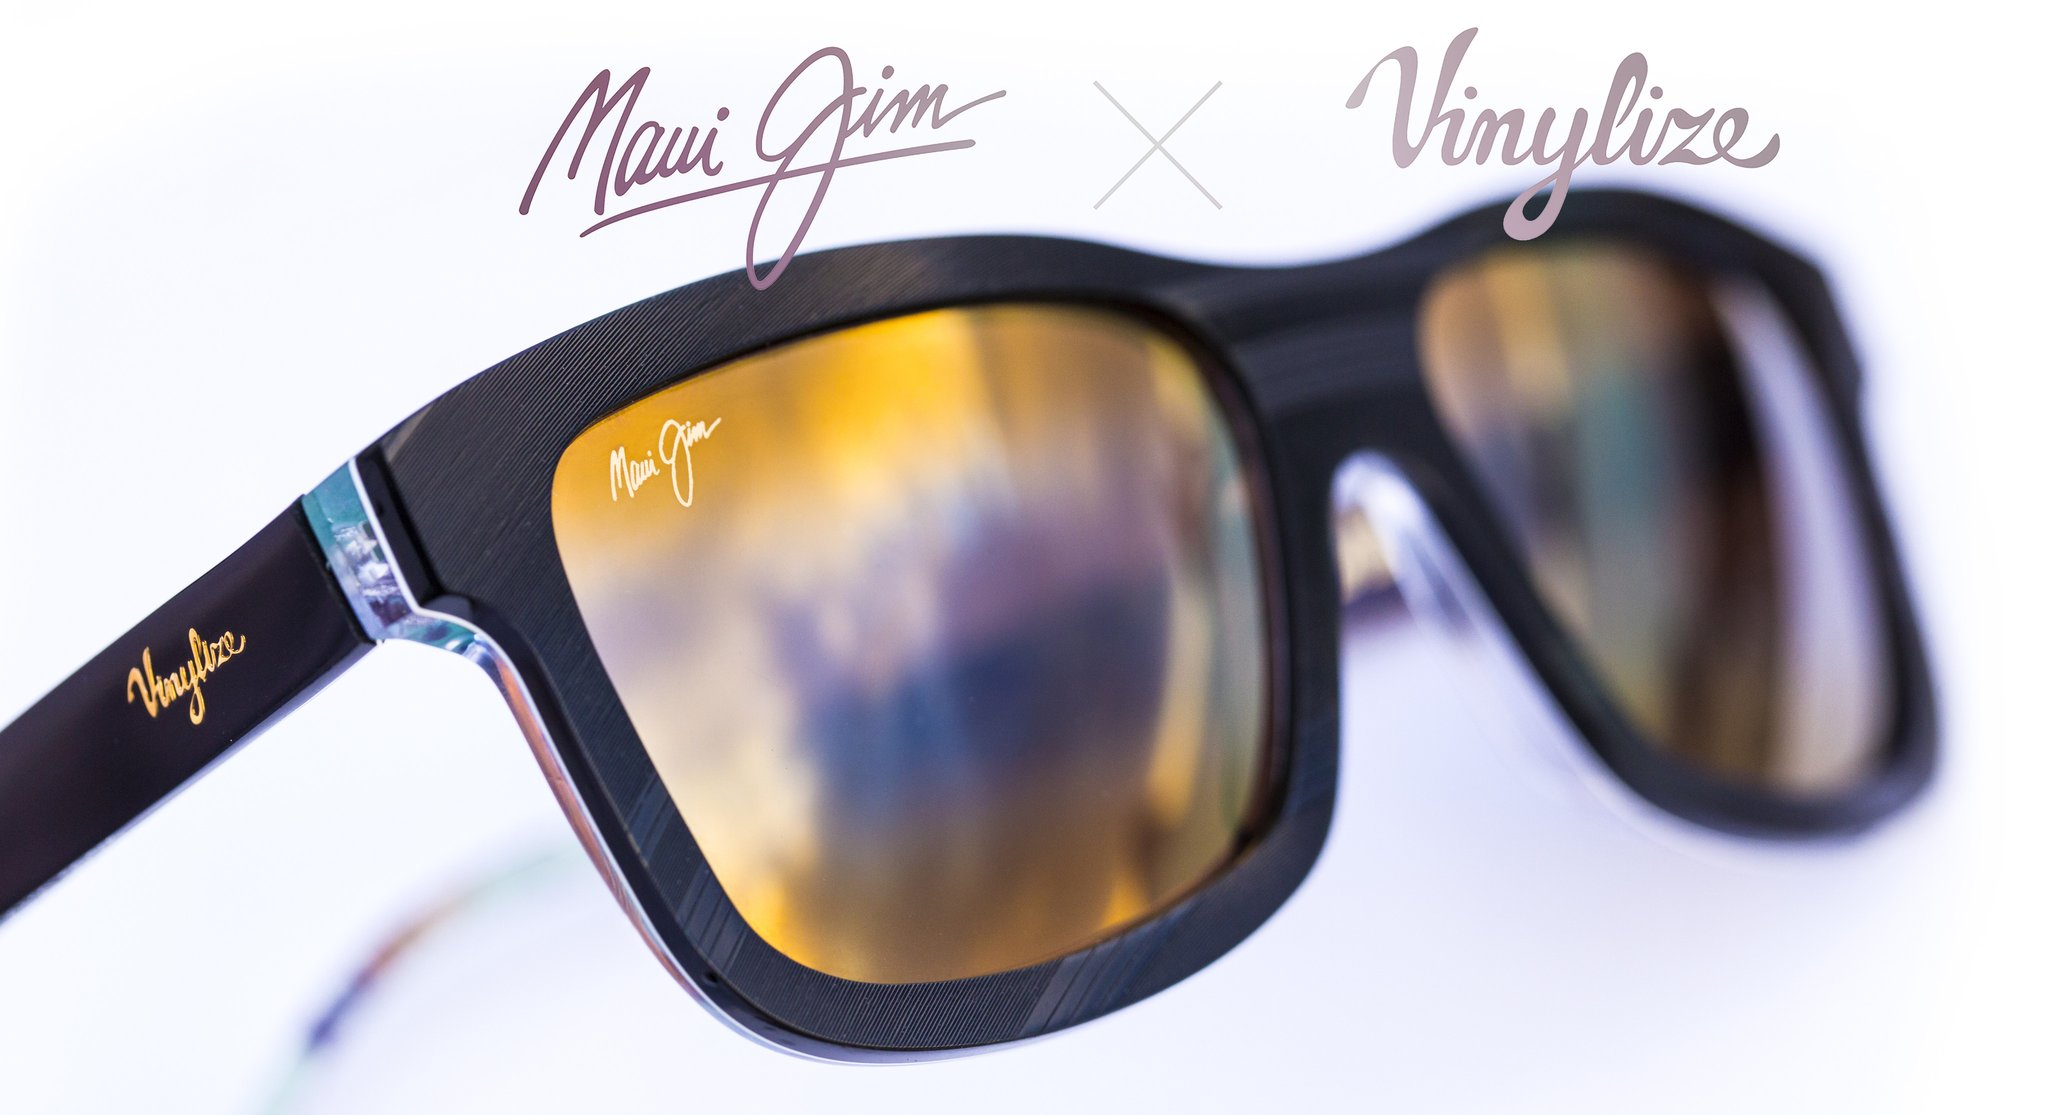 fb5f5fc2573b Limited Edition Vinylize Maui Jim